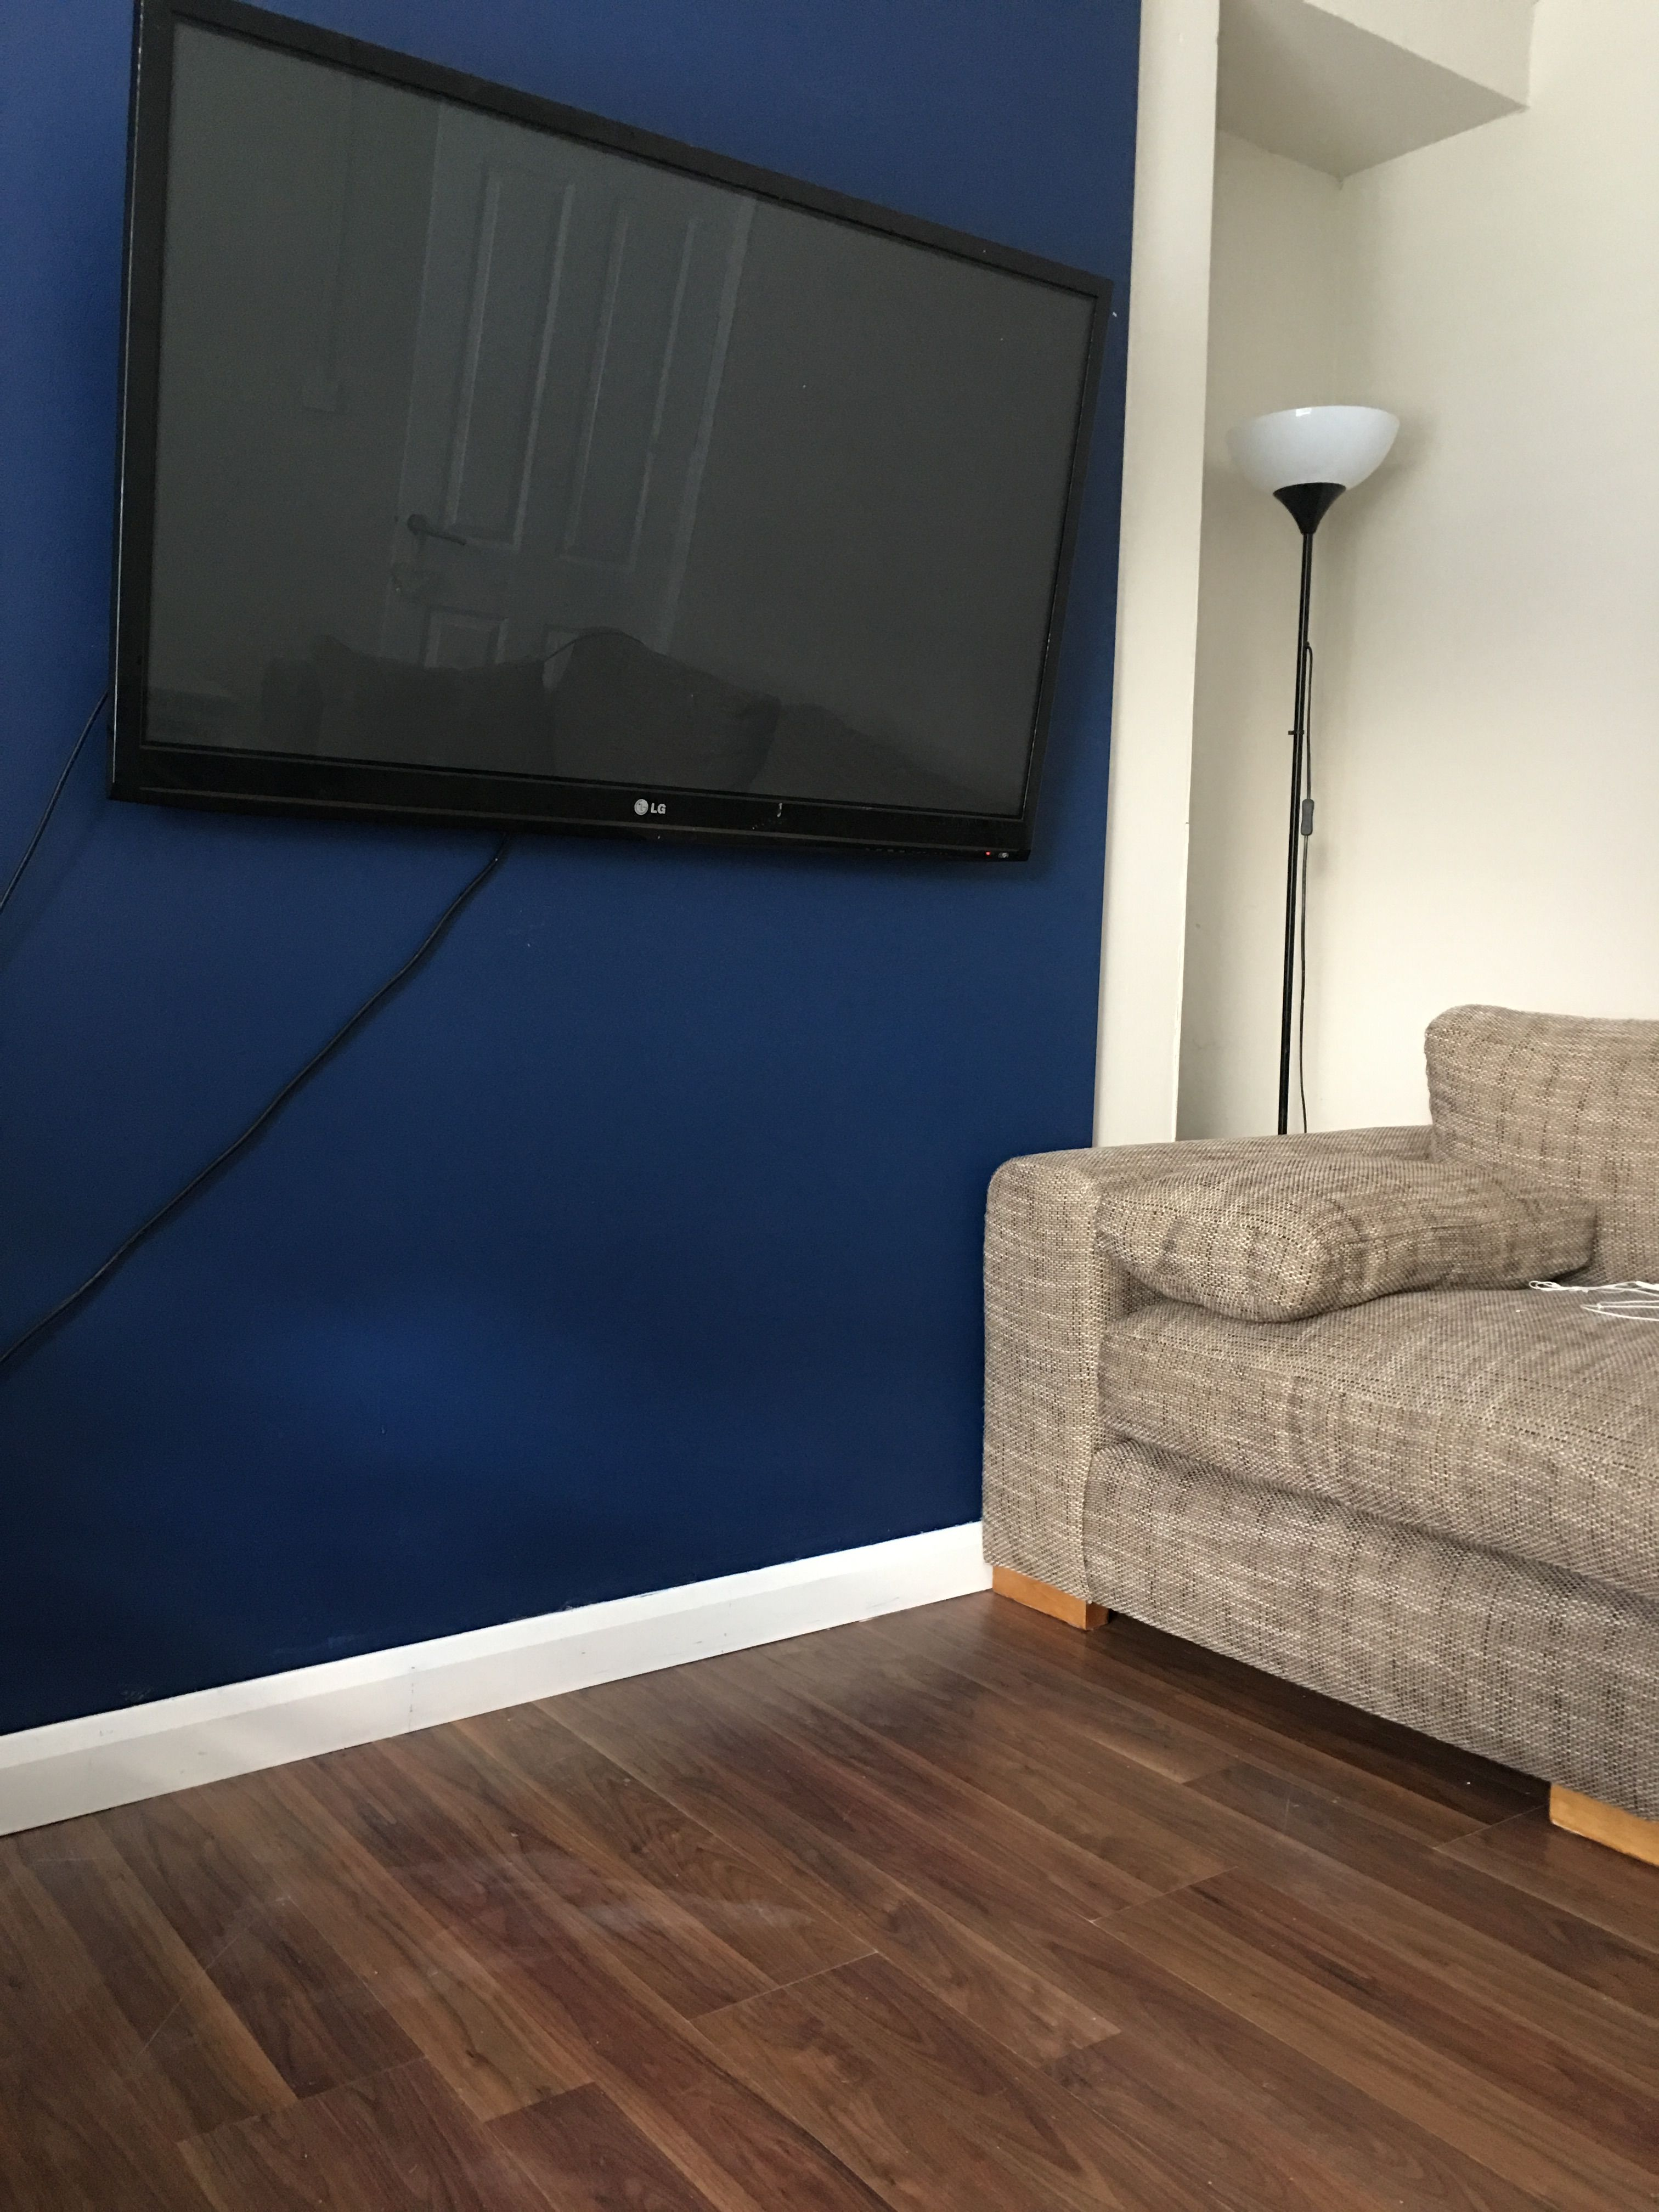 Dulux Sapphire Salute Dulux Egyptian Cotton Blue Living Room Blue Feature Wall Living Room Blue Rooms